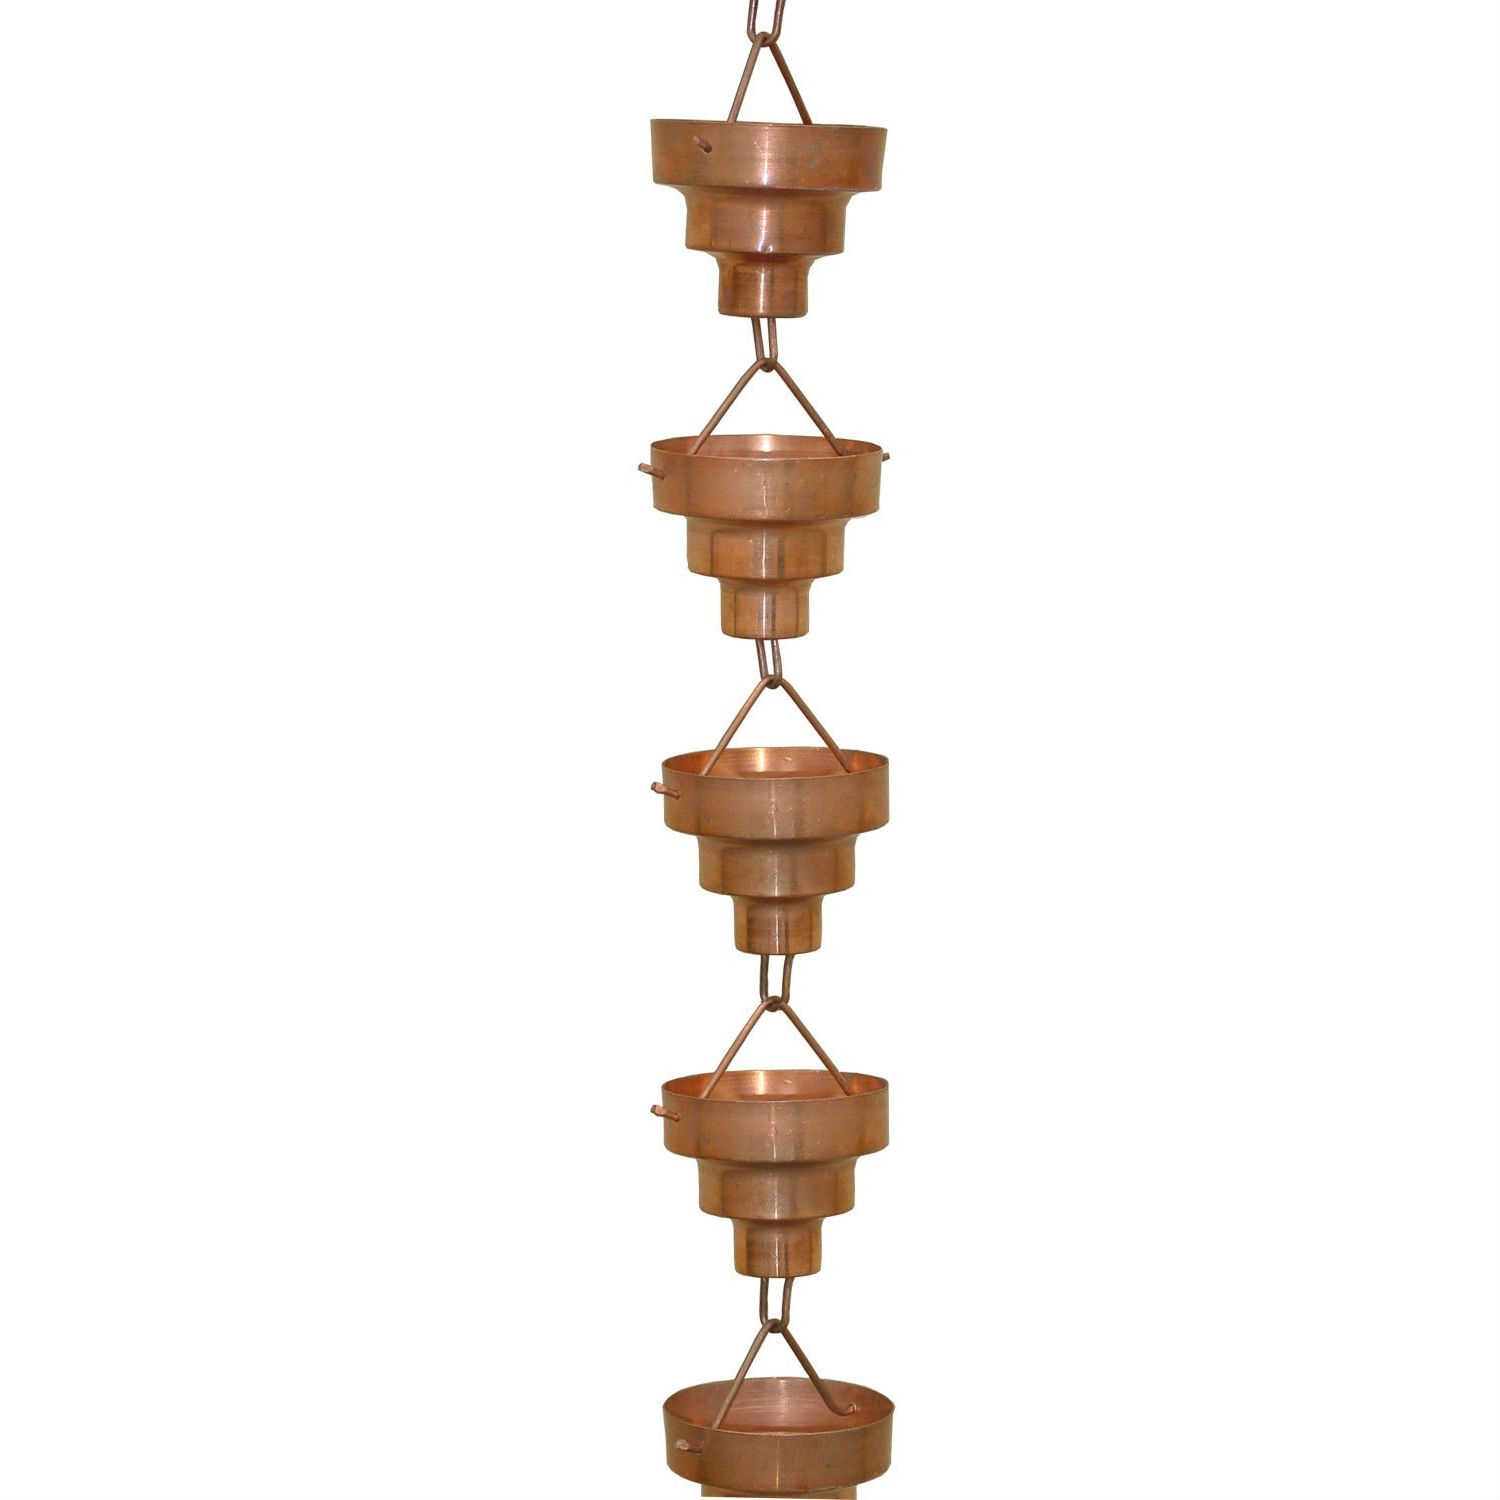 Pure Copper 8.5-Ft Long Rain Chain with Wide Mouth Funnel Cups